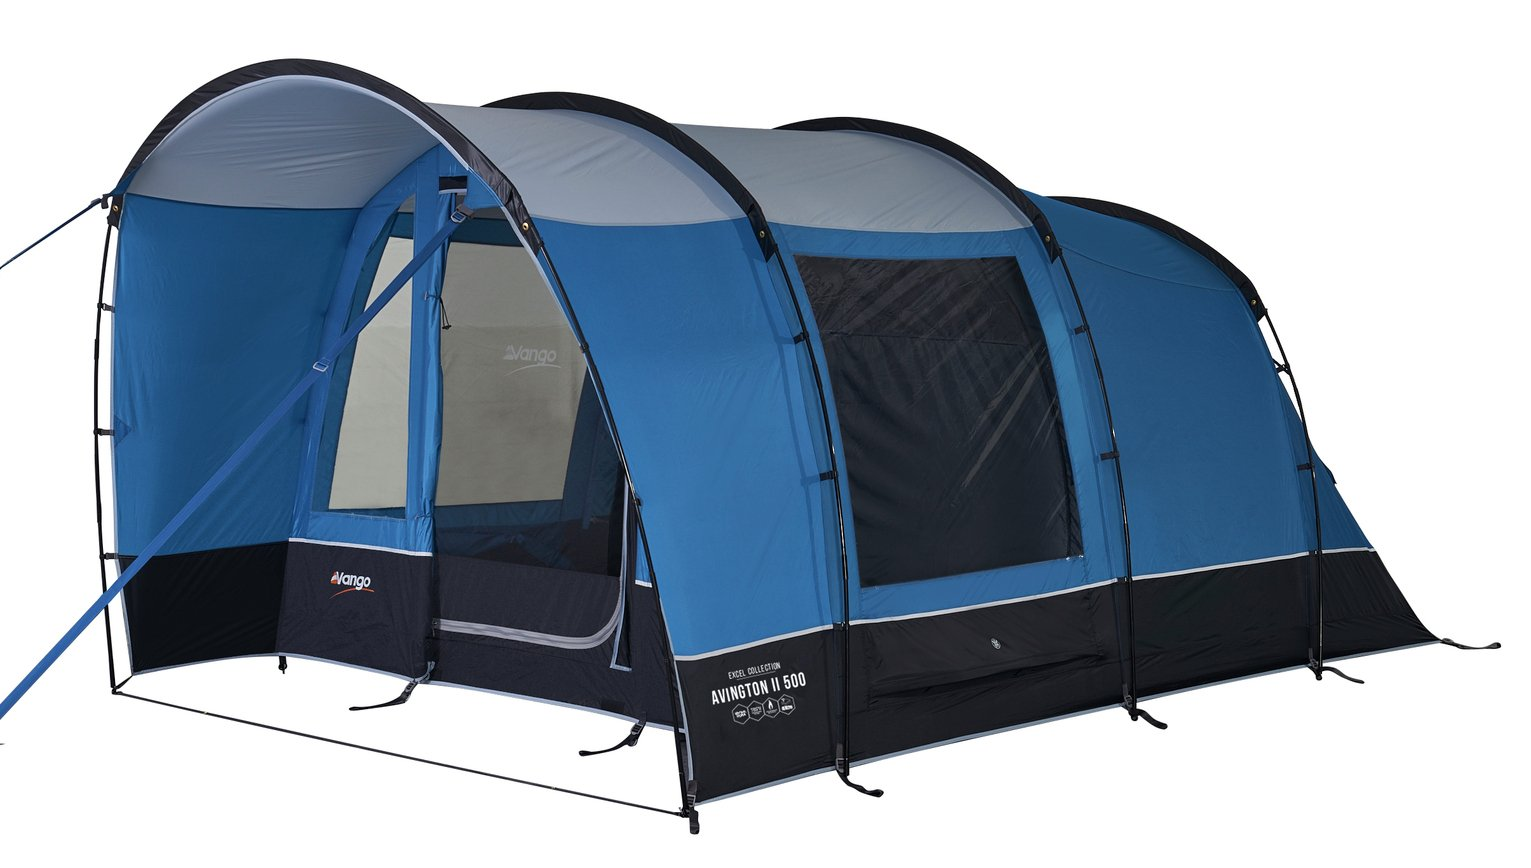 Vango Avington 5 Person 2 Room 500 Tent